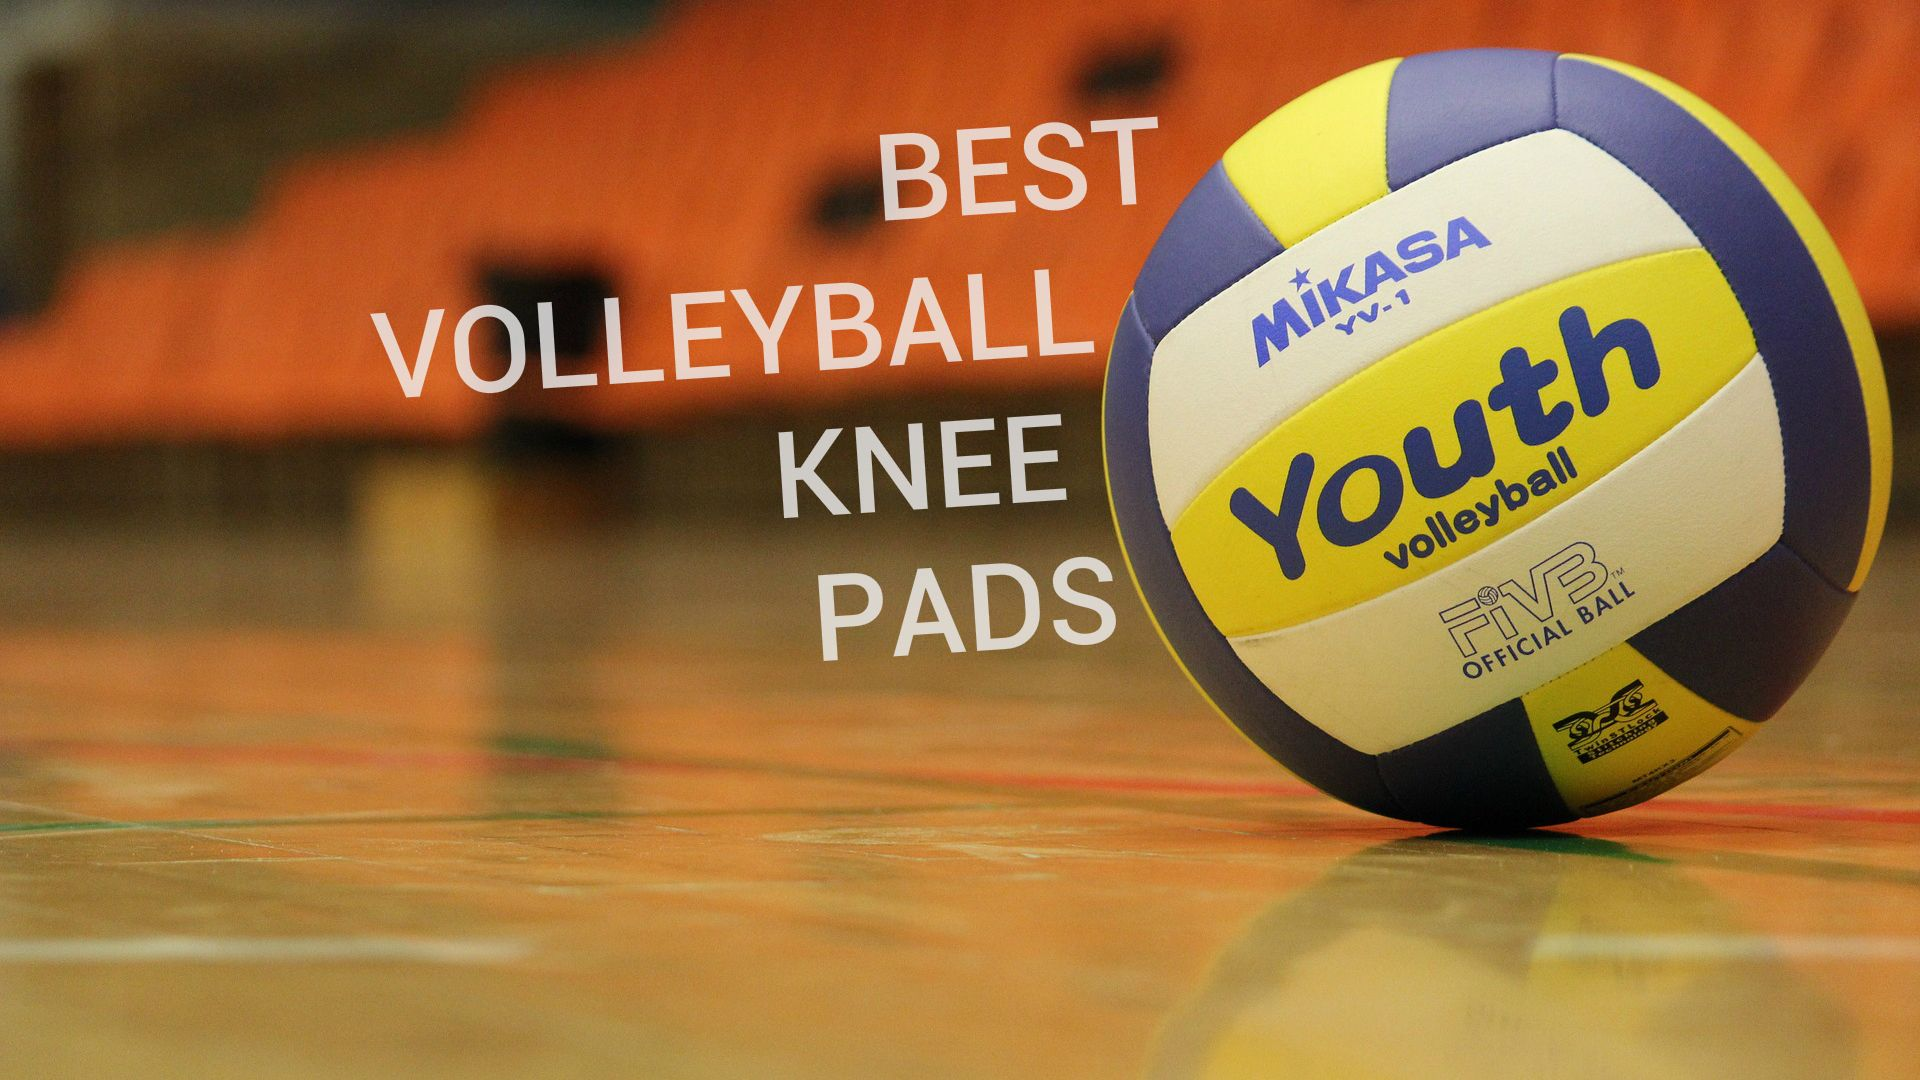 Best Volleyball Knee Pads Volleyball Knee Pads Knee Pads Volleyball